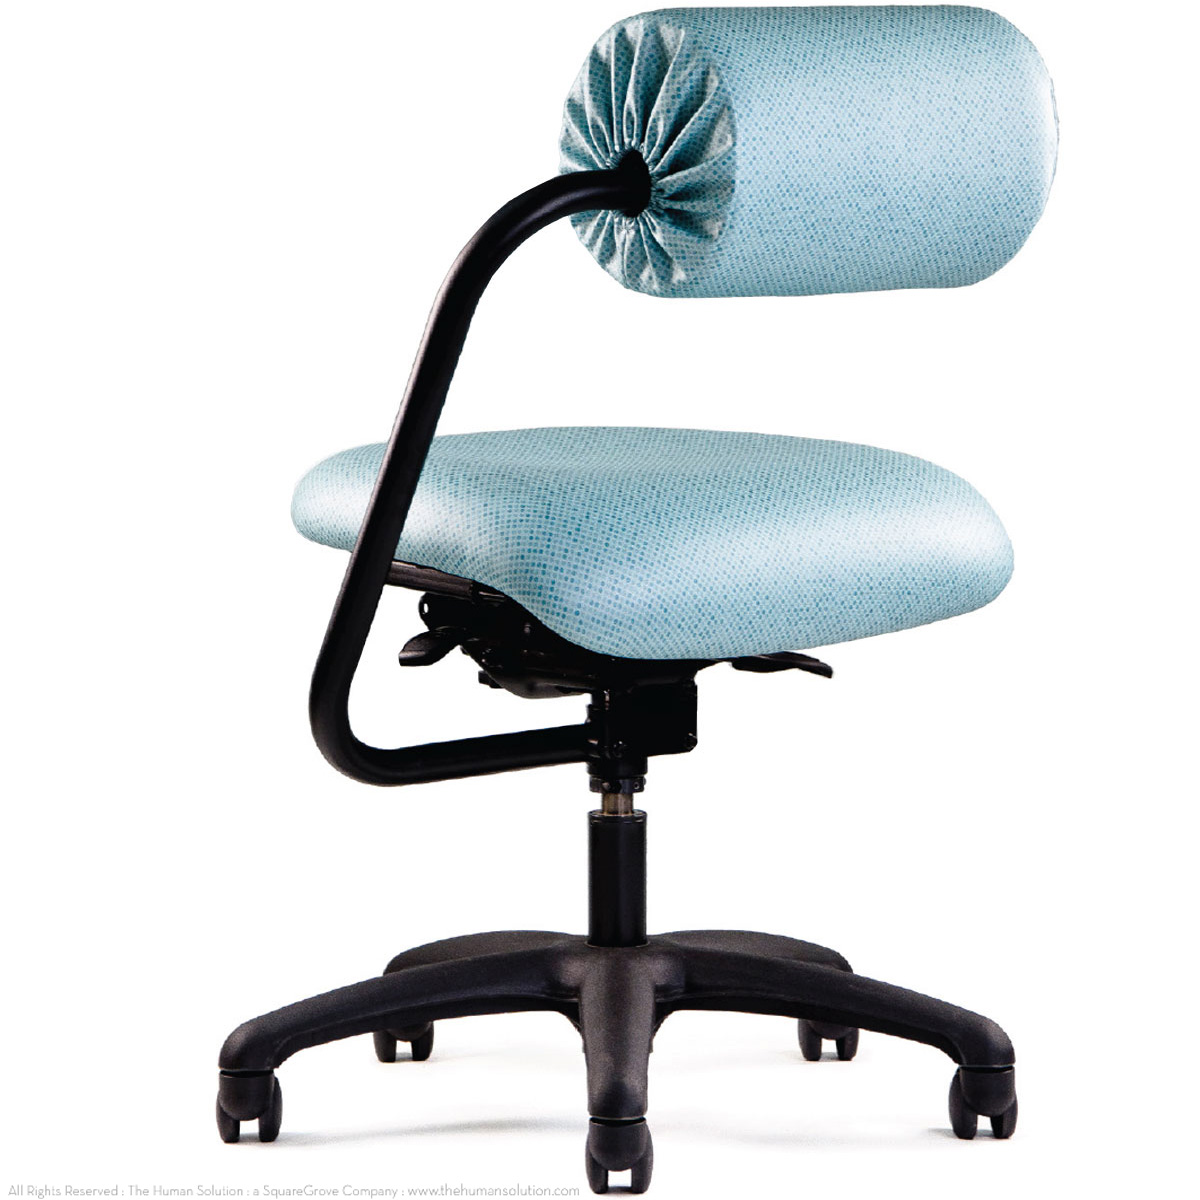 Neutral Posture Chair Neutral Posture Abchair Shop Neutral Posture Chairs